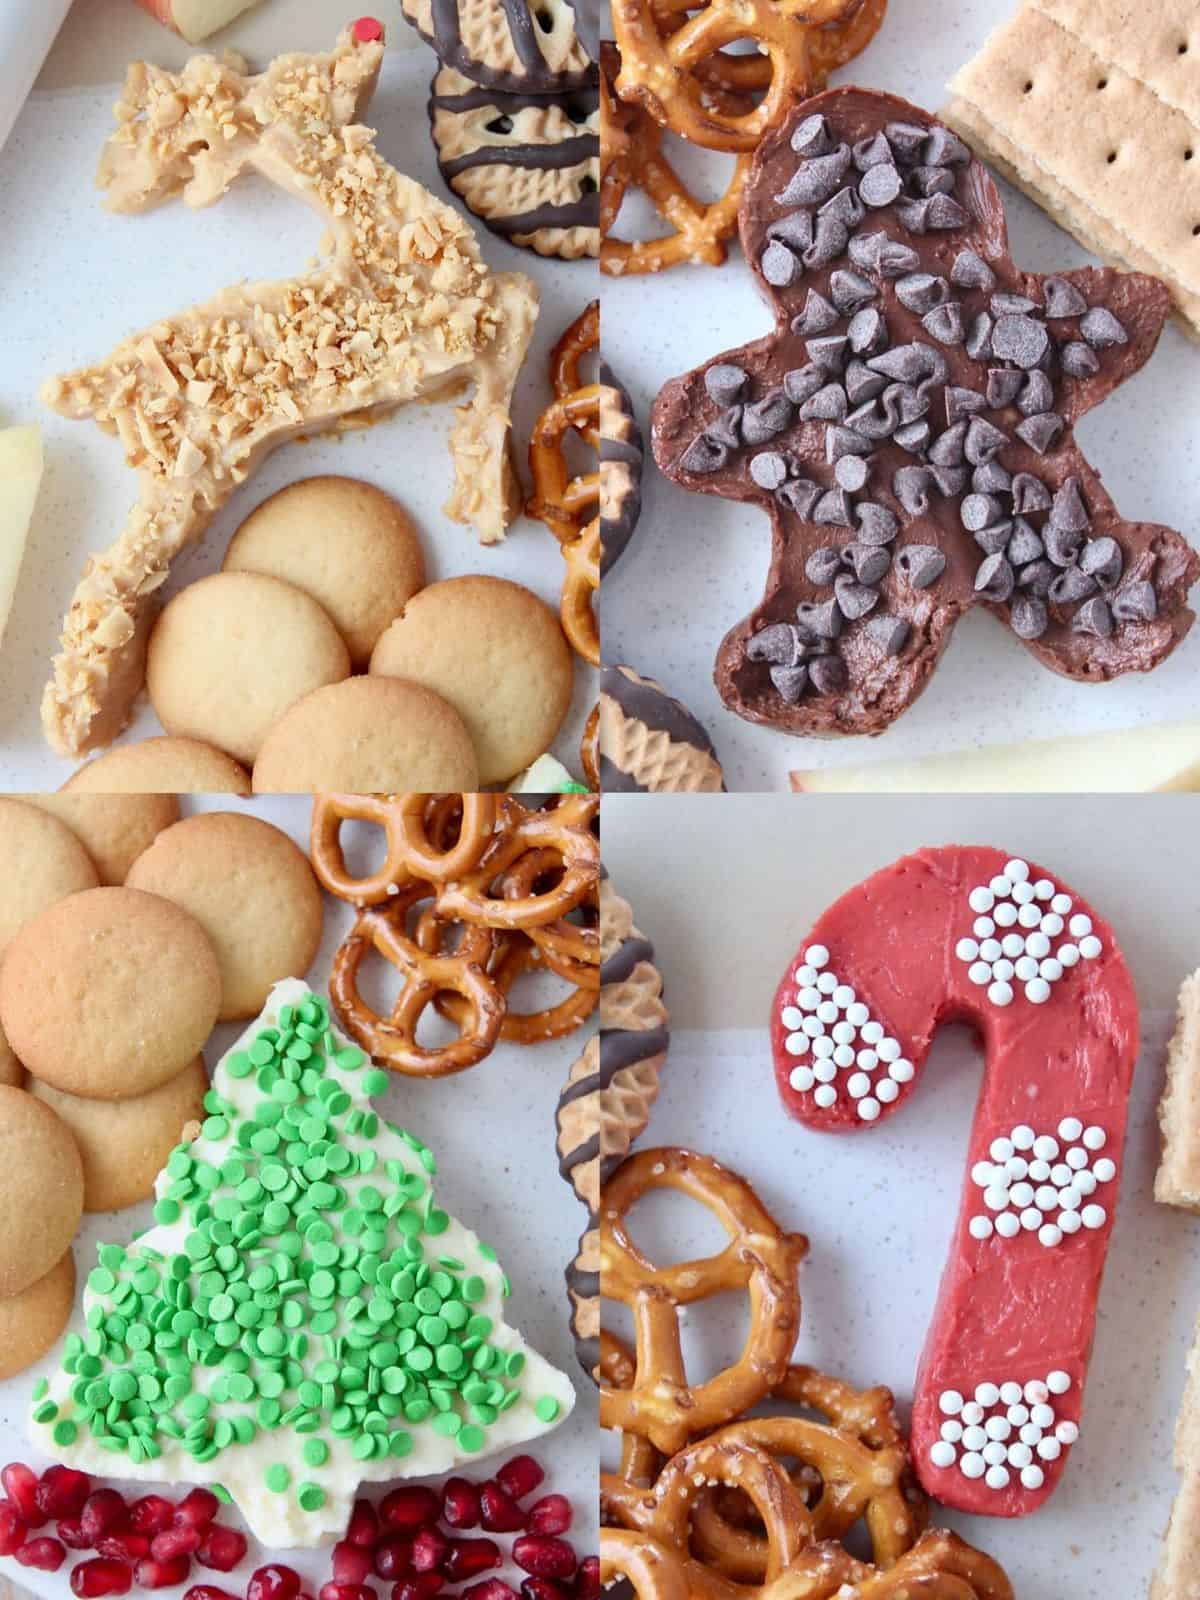 Overhead image of holiday shaped dessert dips